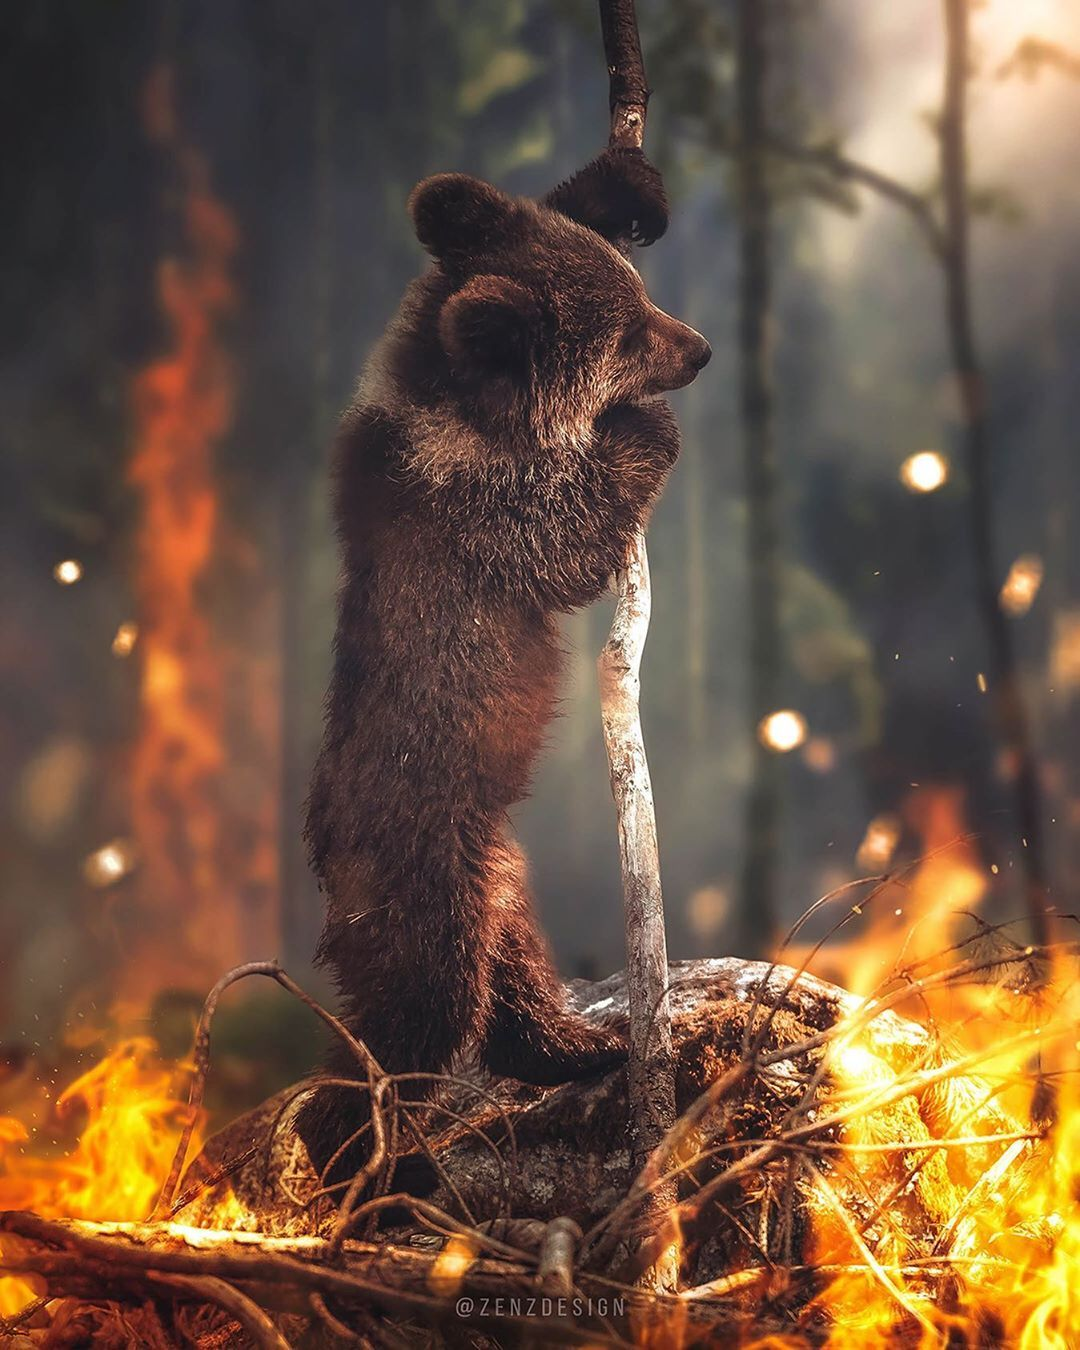 Zenja Gammer On Instagram Siberia Is On Fire It Is Not Economically Feasible To Extinguish A Fire In Siberia The Animal Planet Global Warming Art Fire